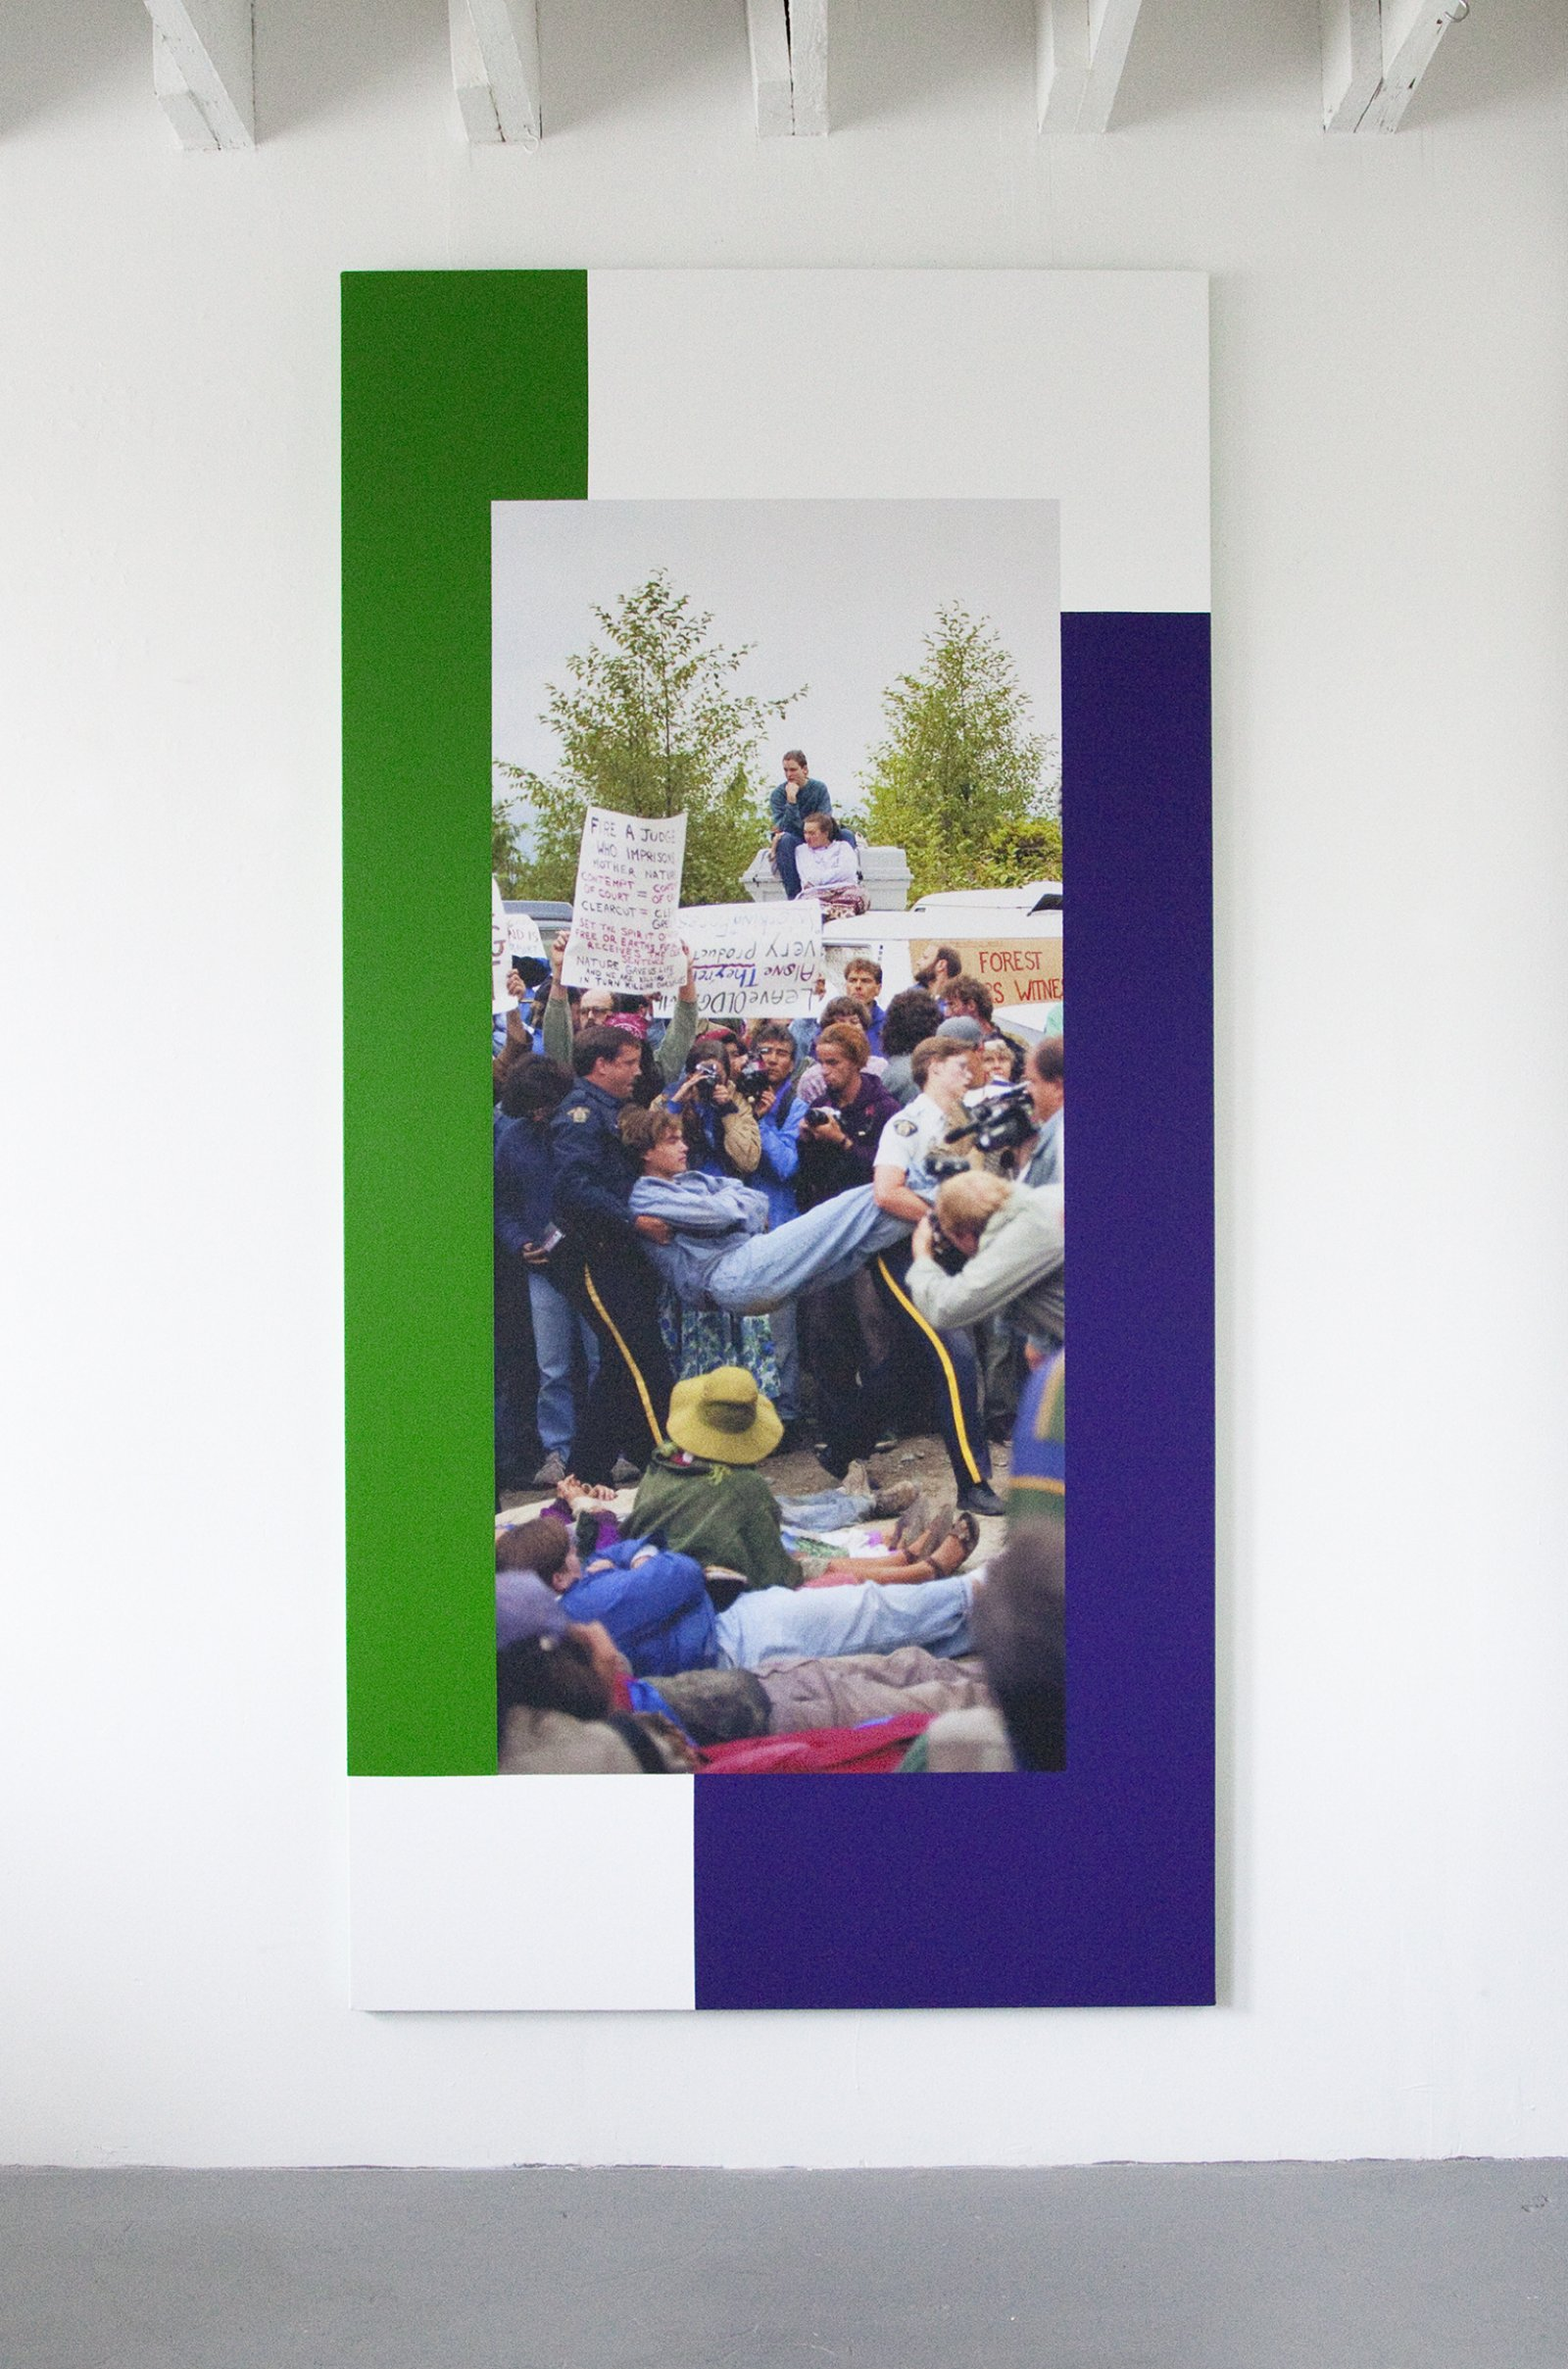 Ian Wallace,The Arrest (Clayoquot Protest August 9, 1993), 2014, photolaminate with acrylic on canvas, 96 x 48 in. (244 x 122 cm)